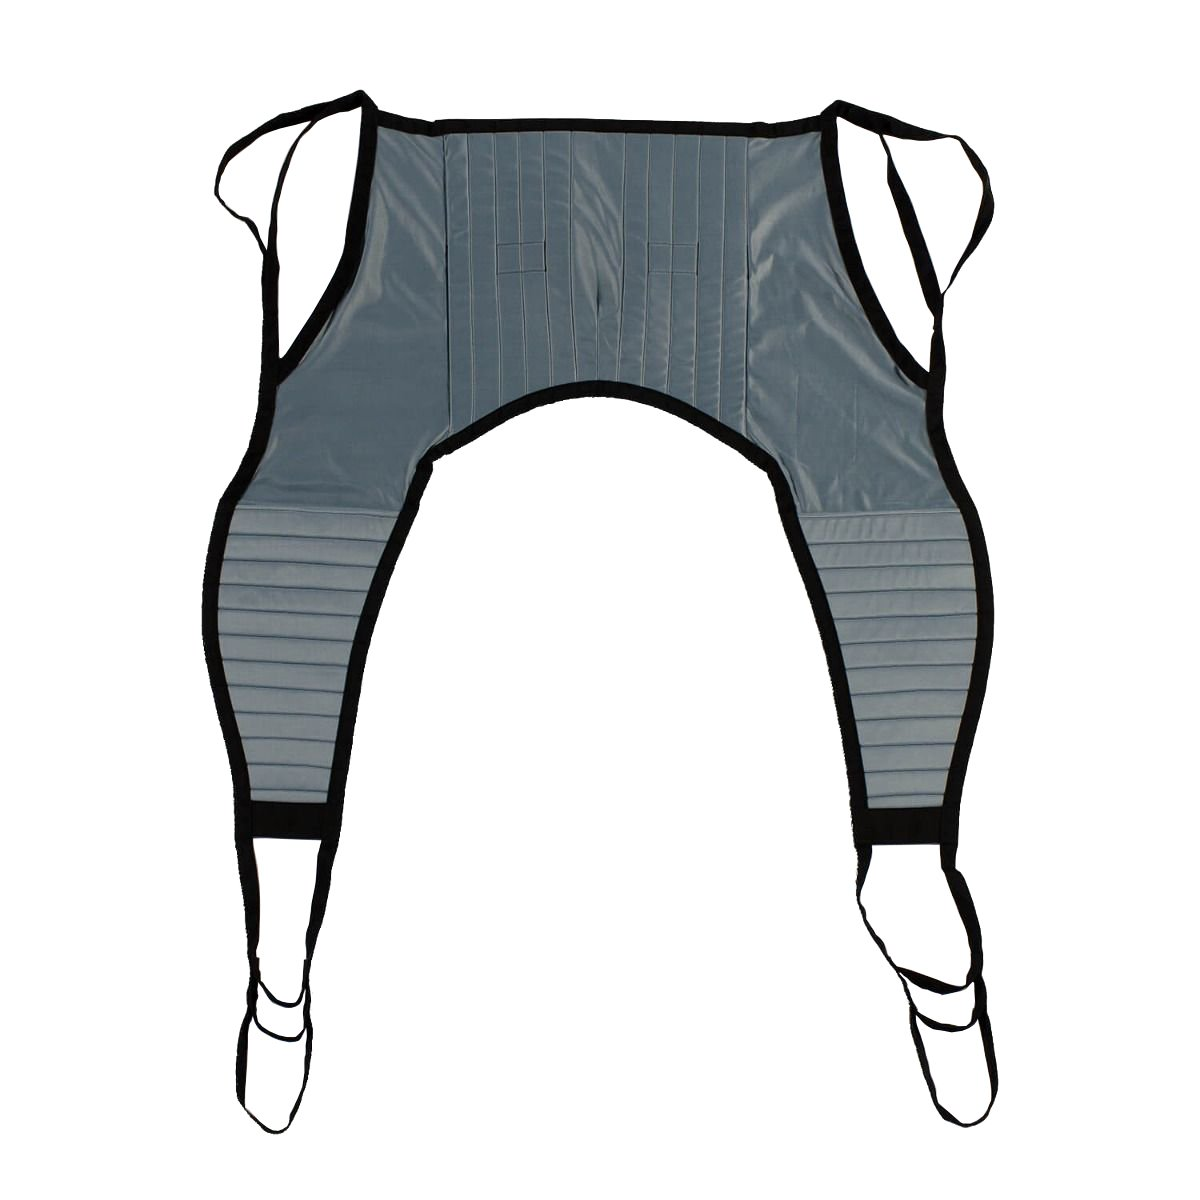 Padded U-Sling without Head Support, Universal Patient Lift Sling, Size Medium, 600lb Capacity